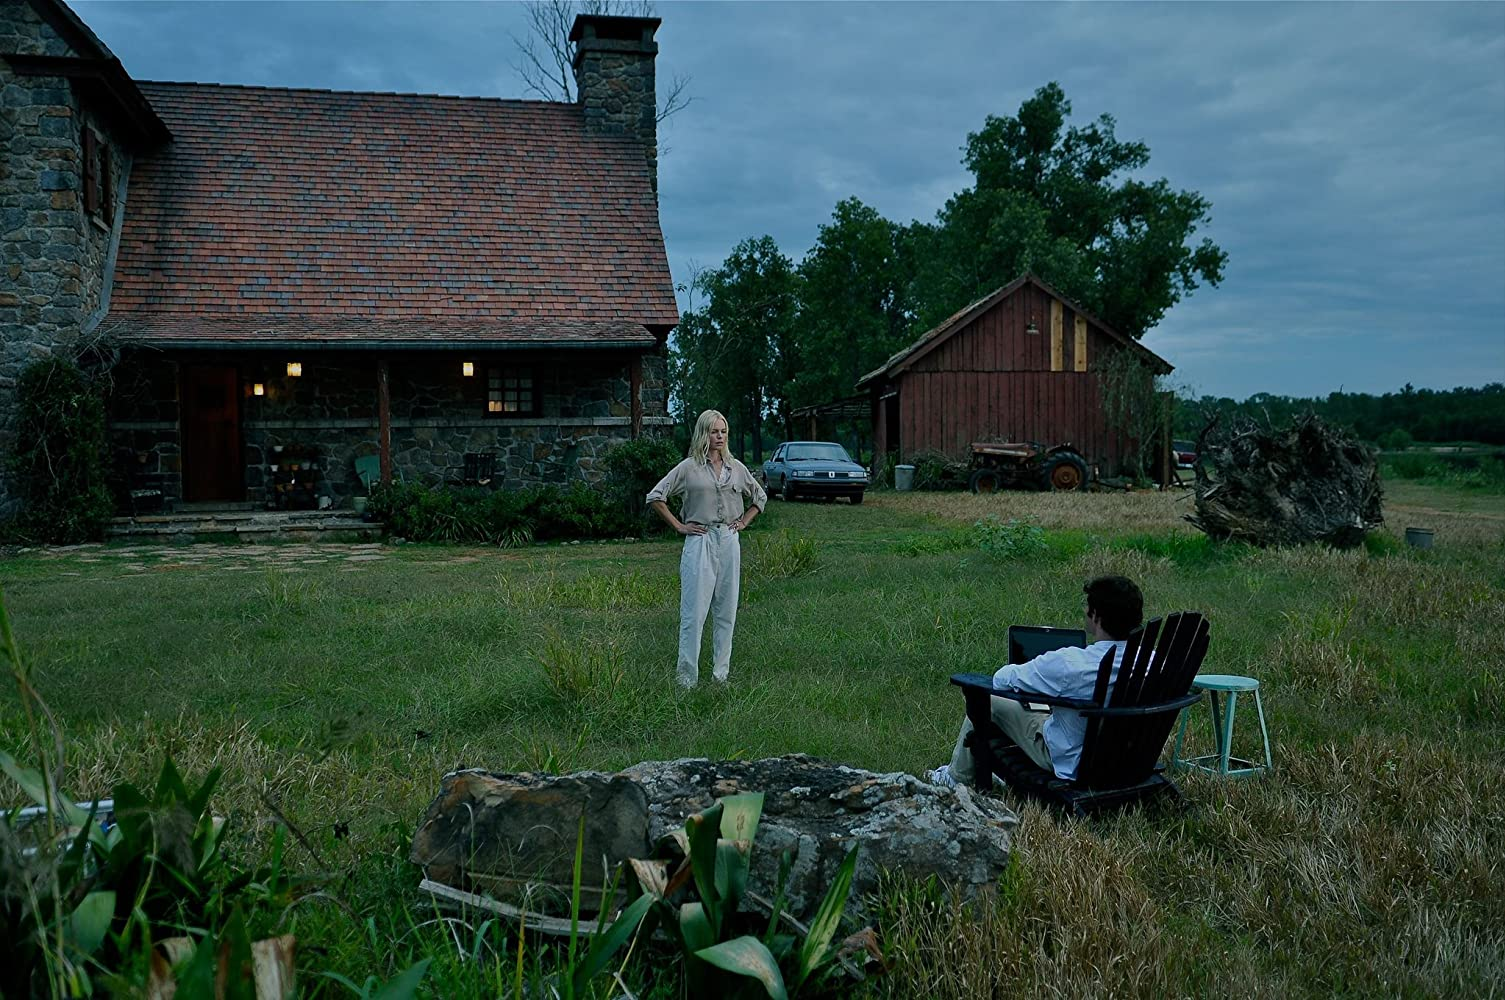 Kate Bosworth in Straw Dogs (2011)